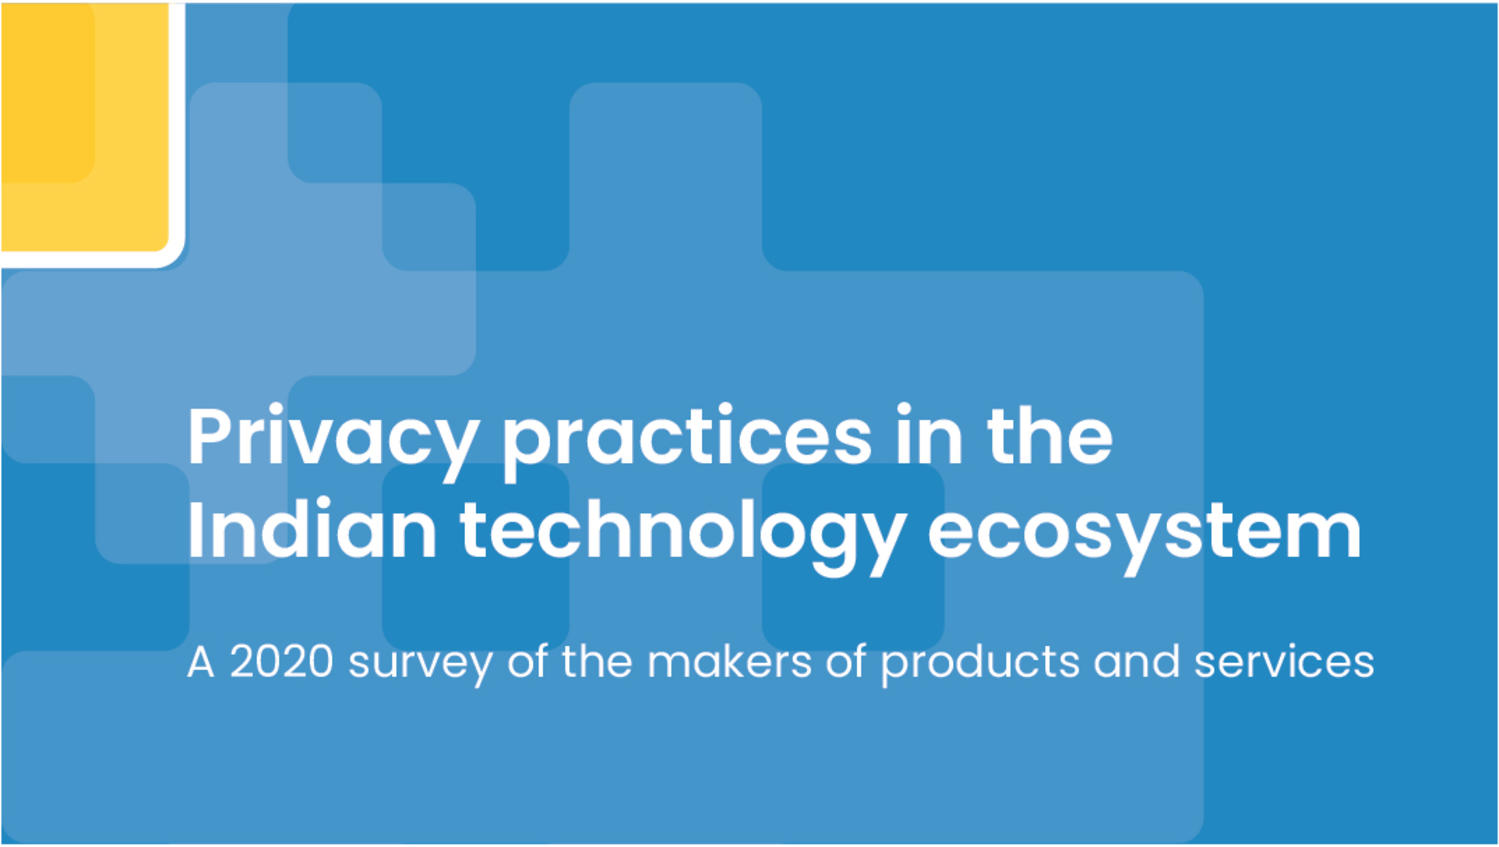 Privacy practices in the Indian technology ecosystem